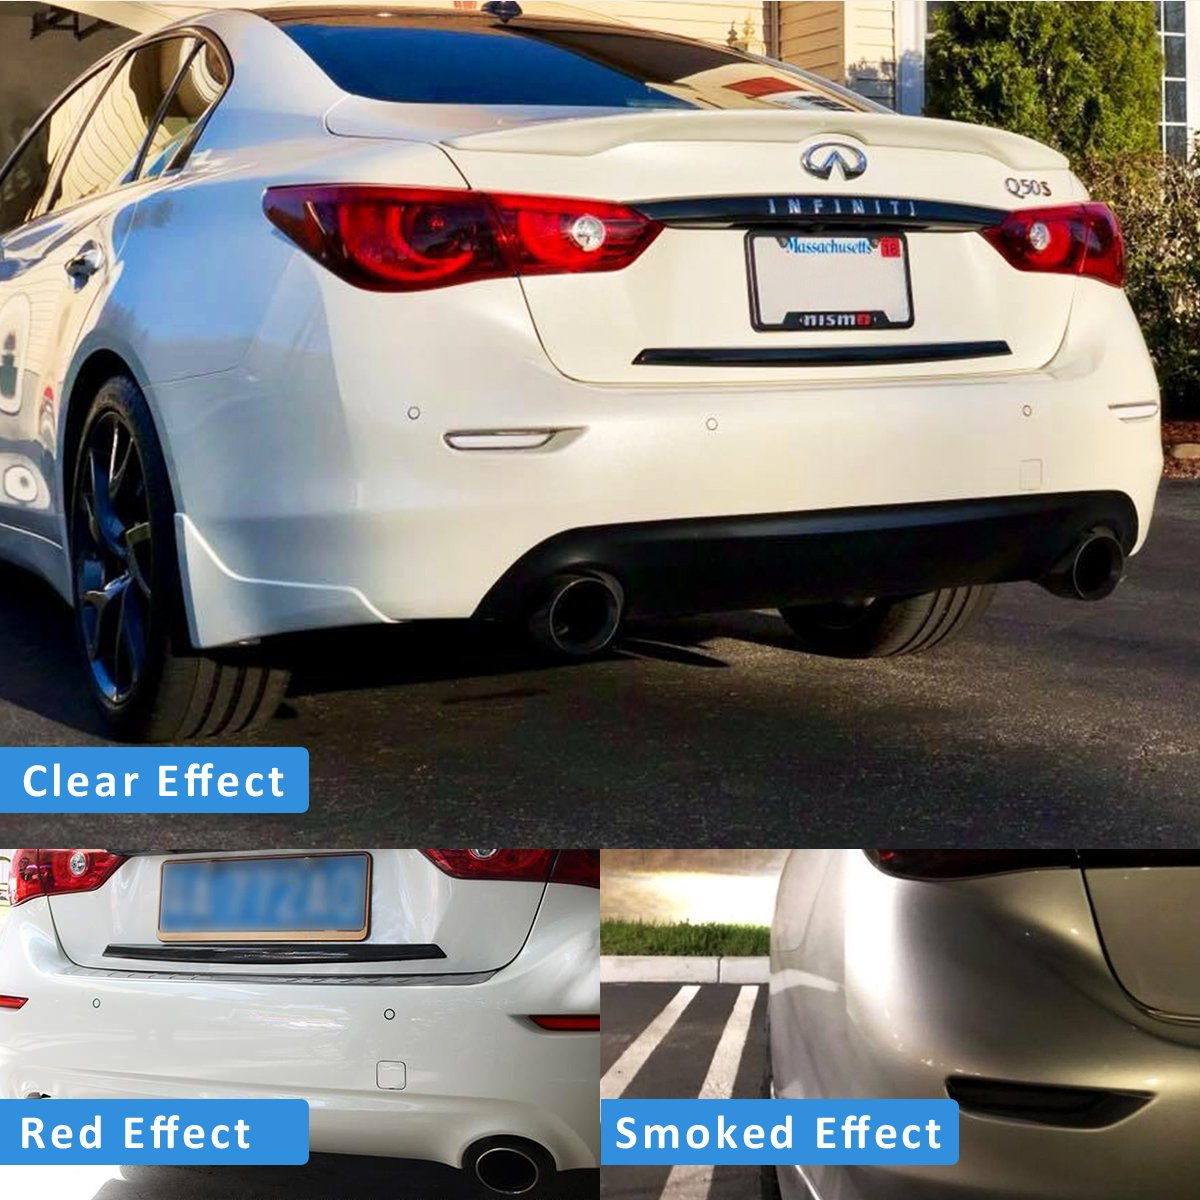 Smoked LED Rear Bumper Reflector Sequntial Relfectors Driving Braking Turing Plug and play Version EASY INSTALLATION For Infiniti Q50 Q50L